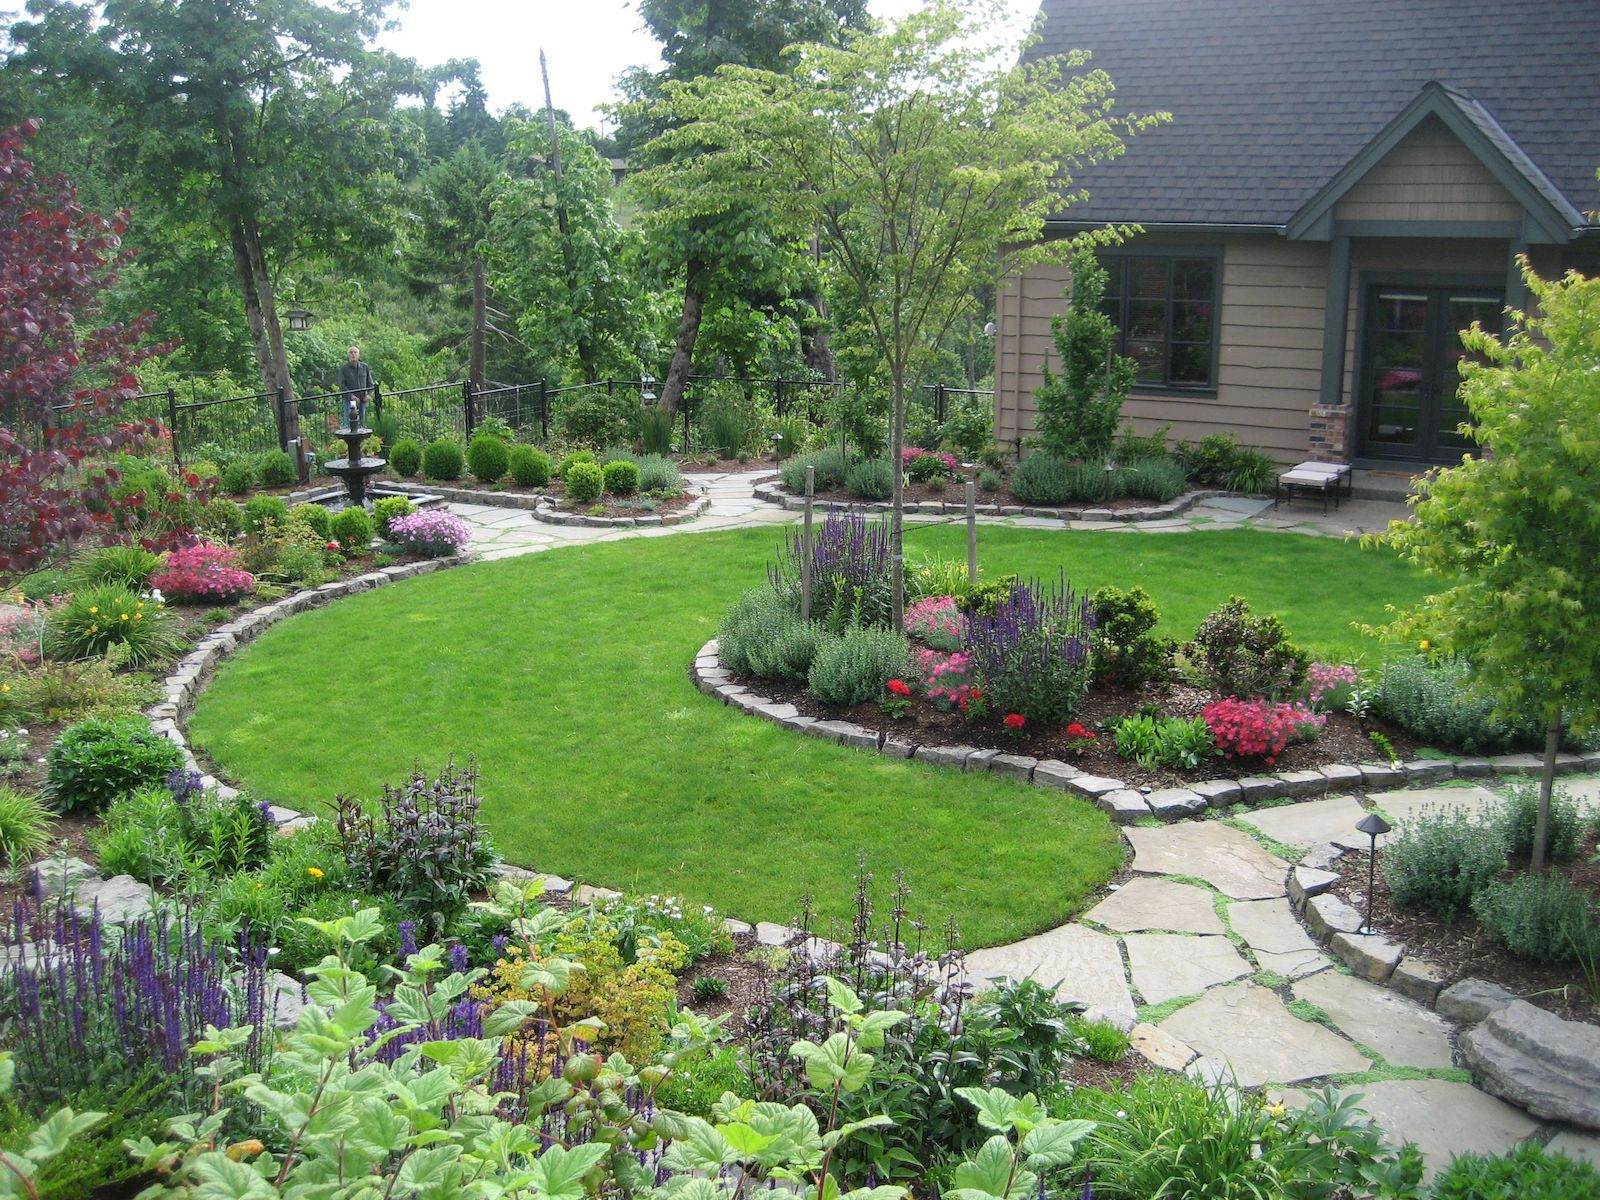 Front yard driveway landscaping ideas   Best Inspiring Front Yard Landscaping Ideas For